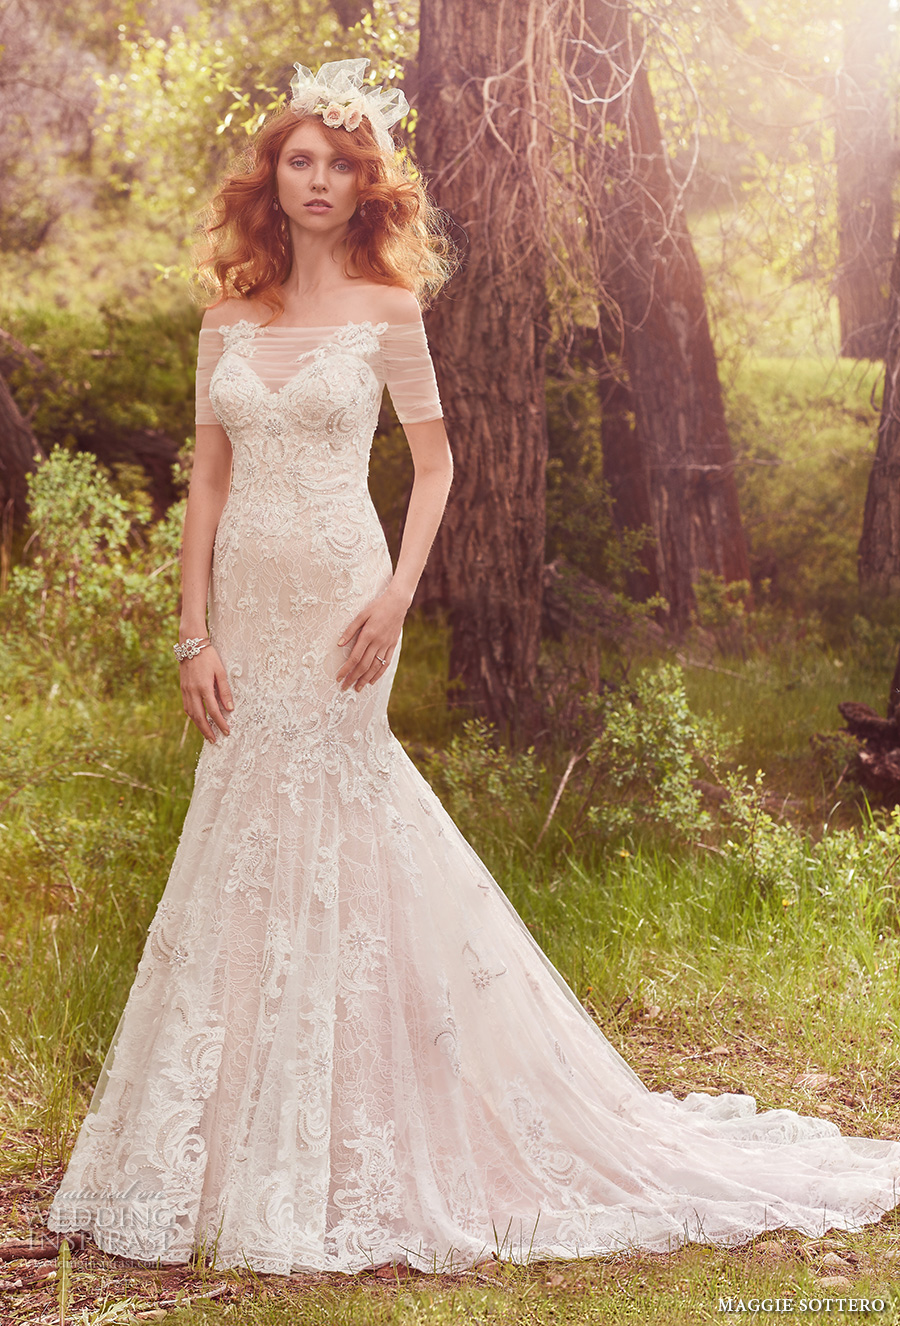 2bbc85068f1 maggie sottero spring 2017 bridal strapless sweetheart neckline full  embellishment elegant fit flare mermaid wedding dress. ""